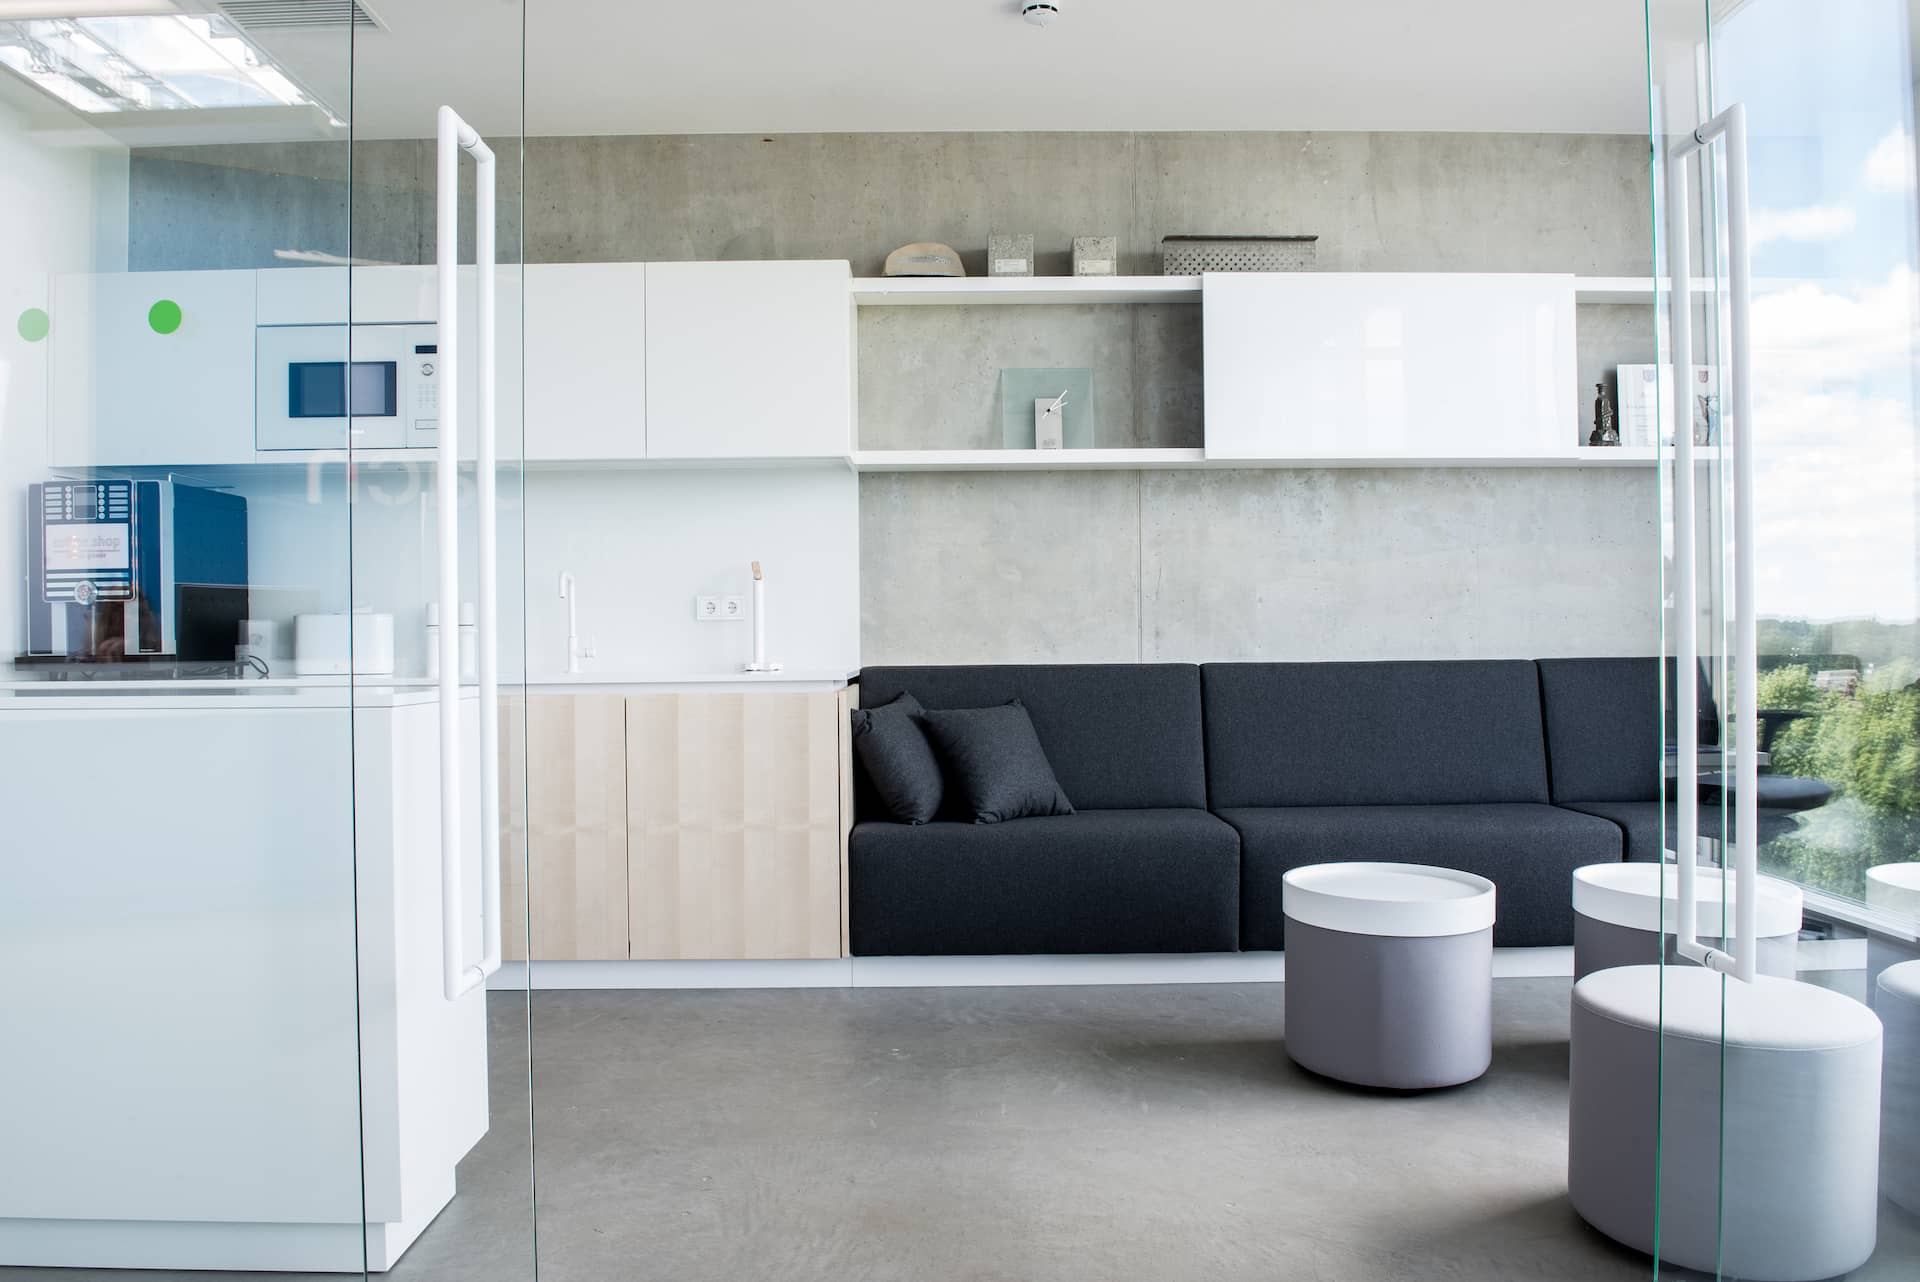 Kitchenette in the office